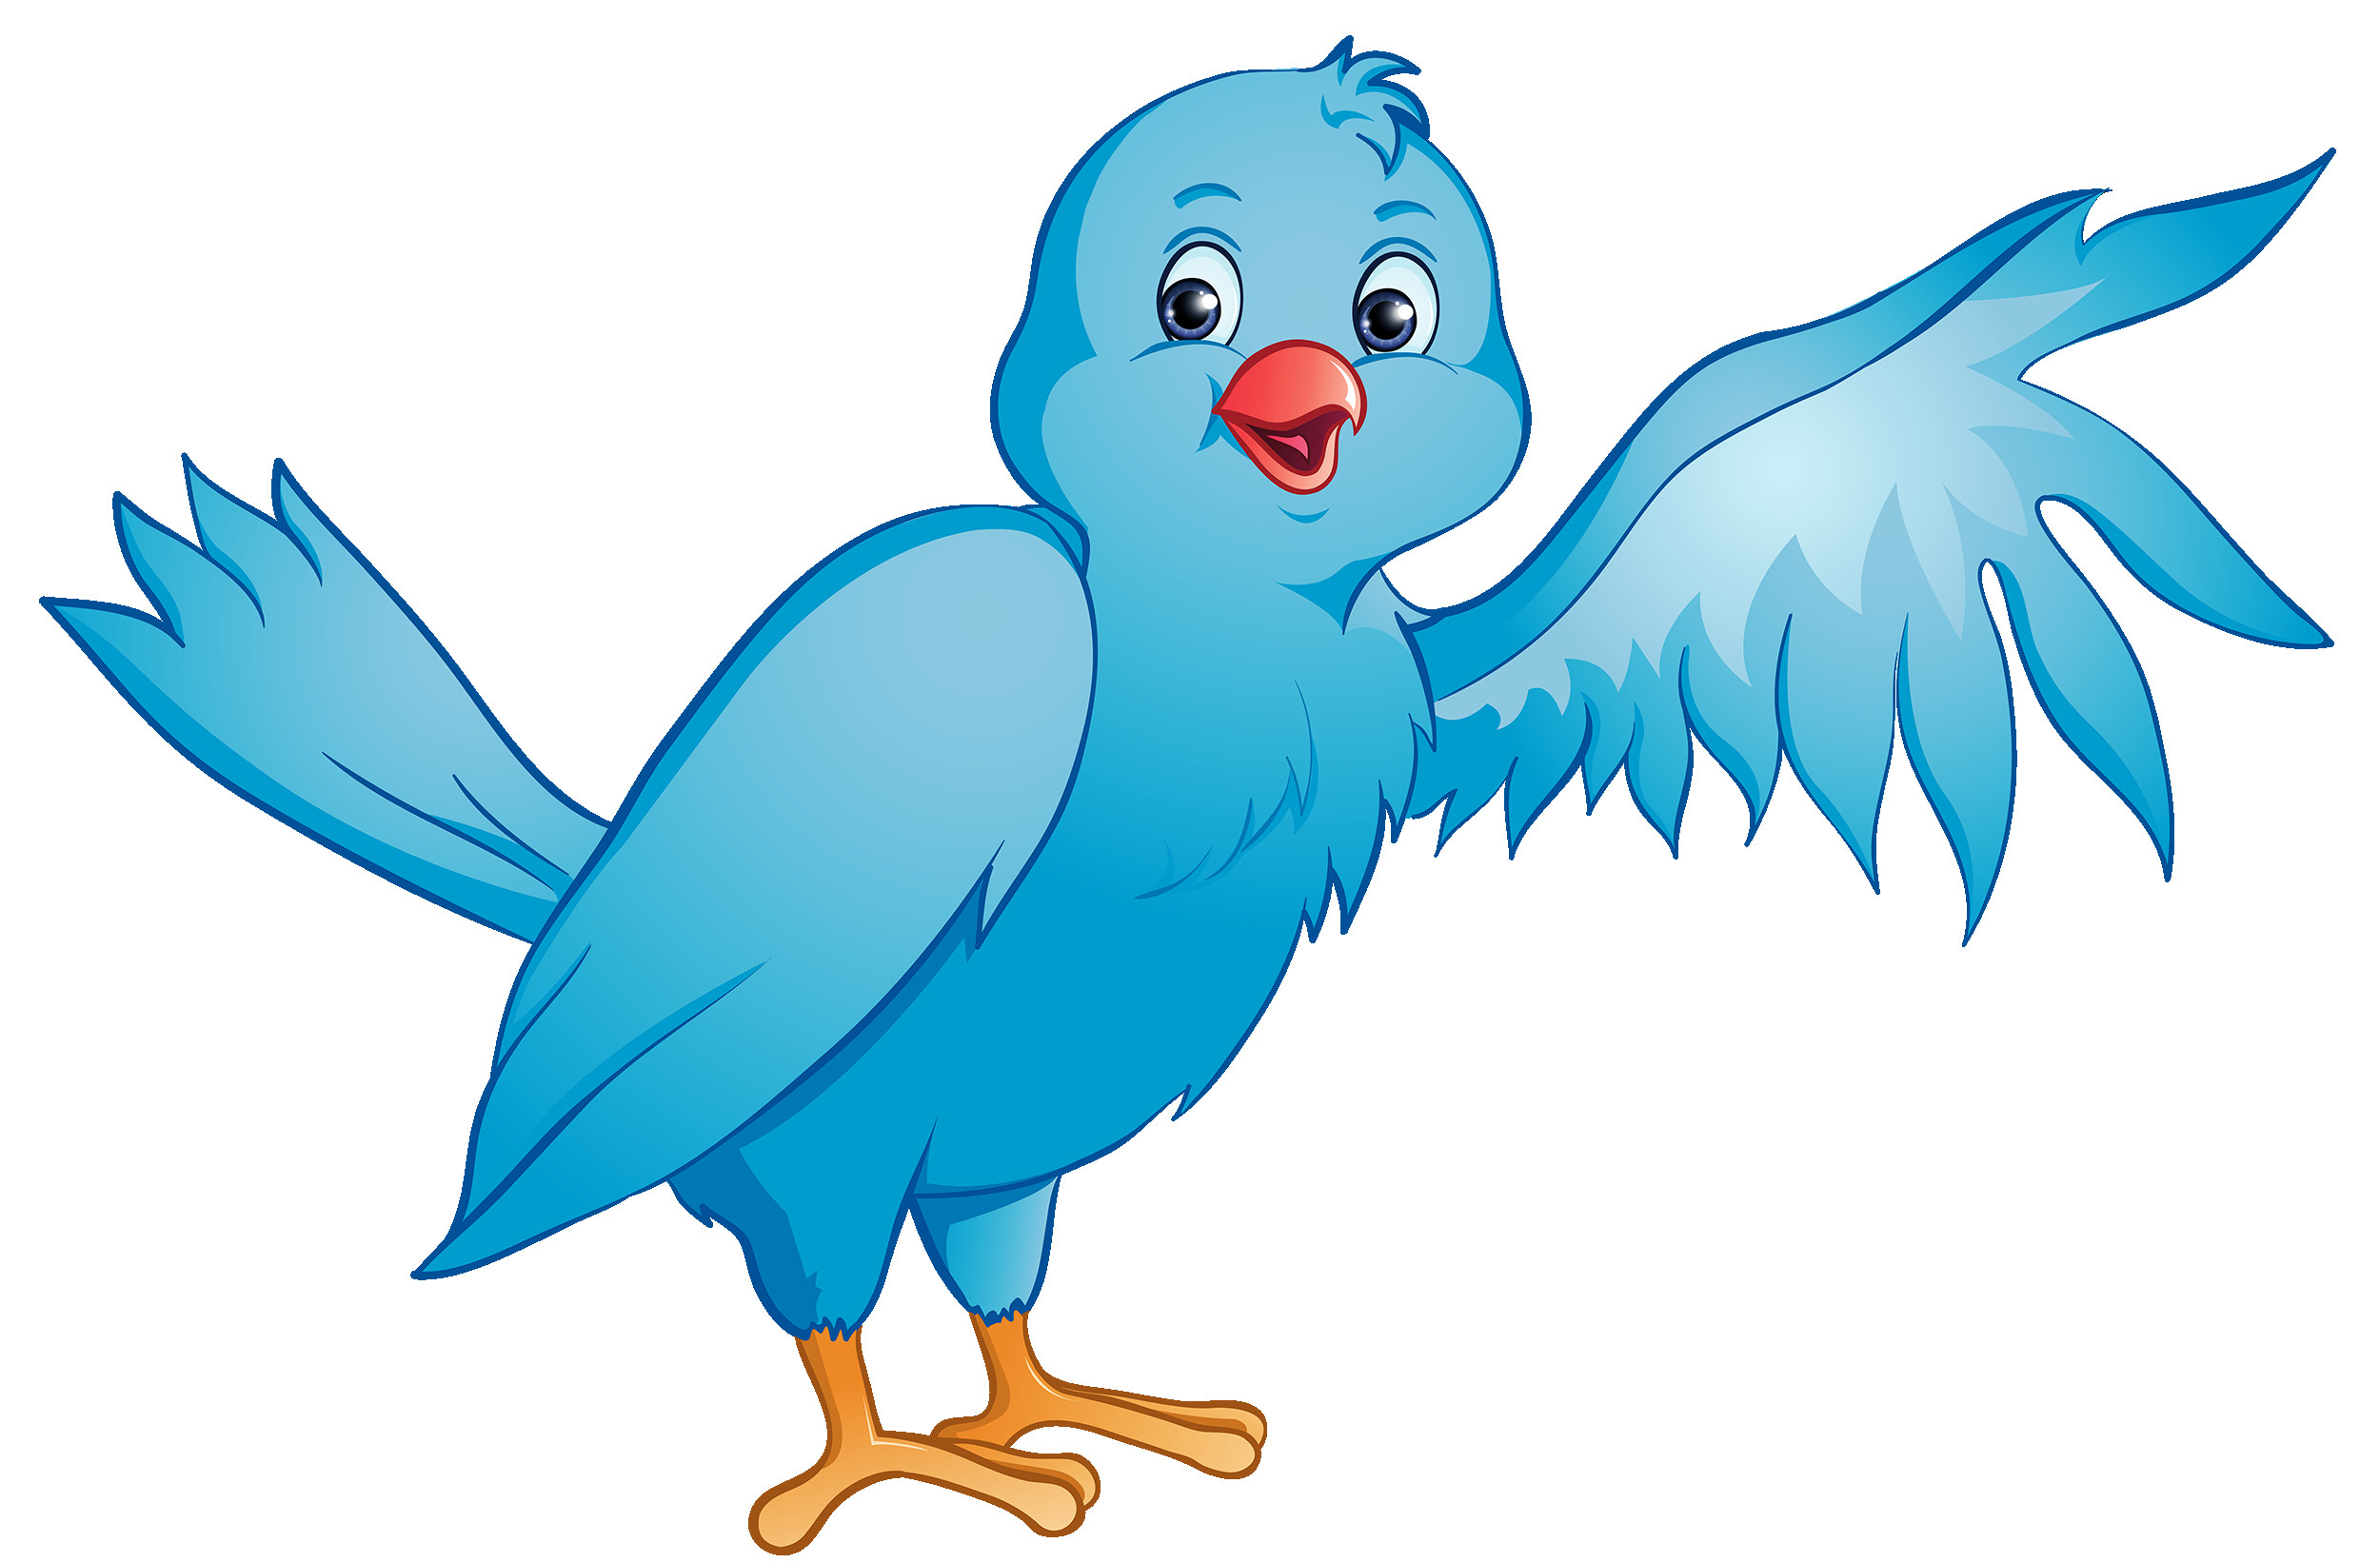 2500x1642 Free Bird Cartoon Clipart Images On Page 0 Yanhe Clip Art